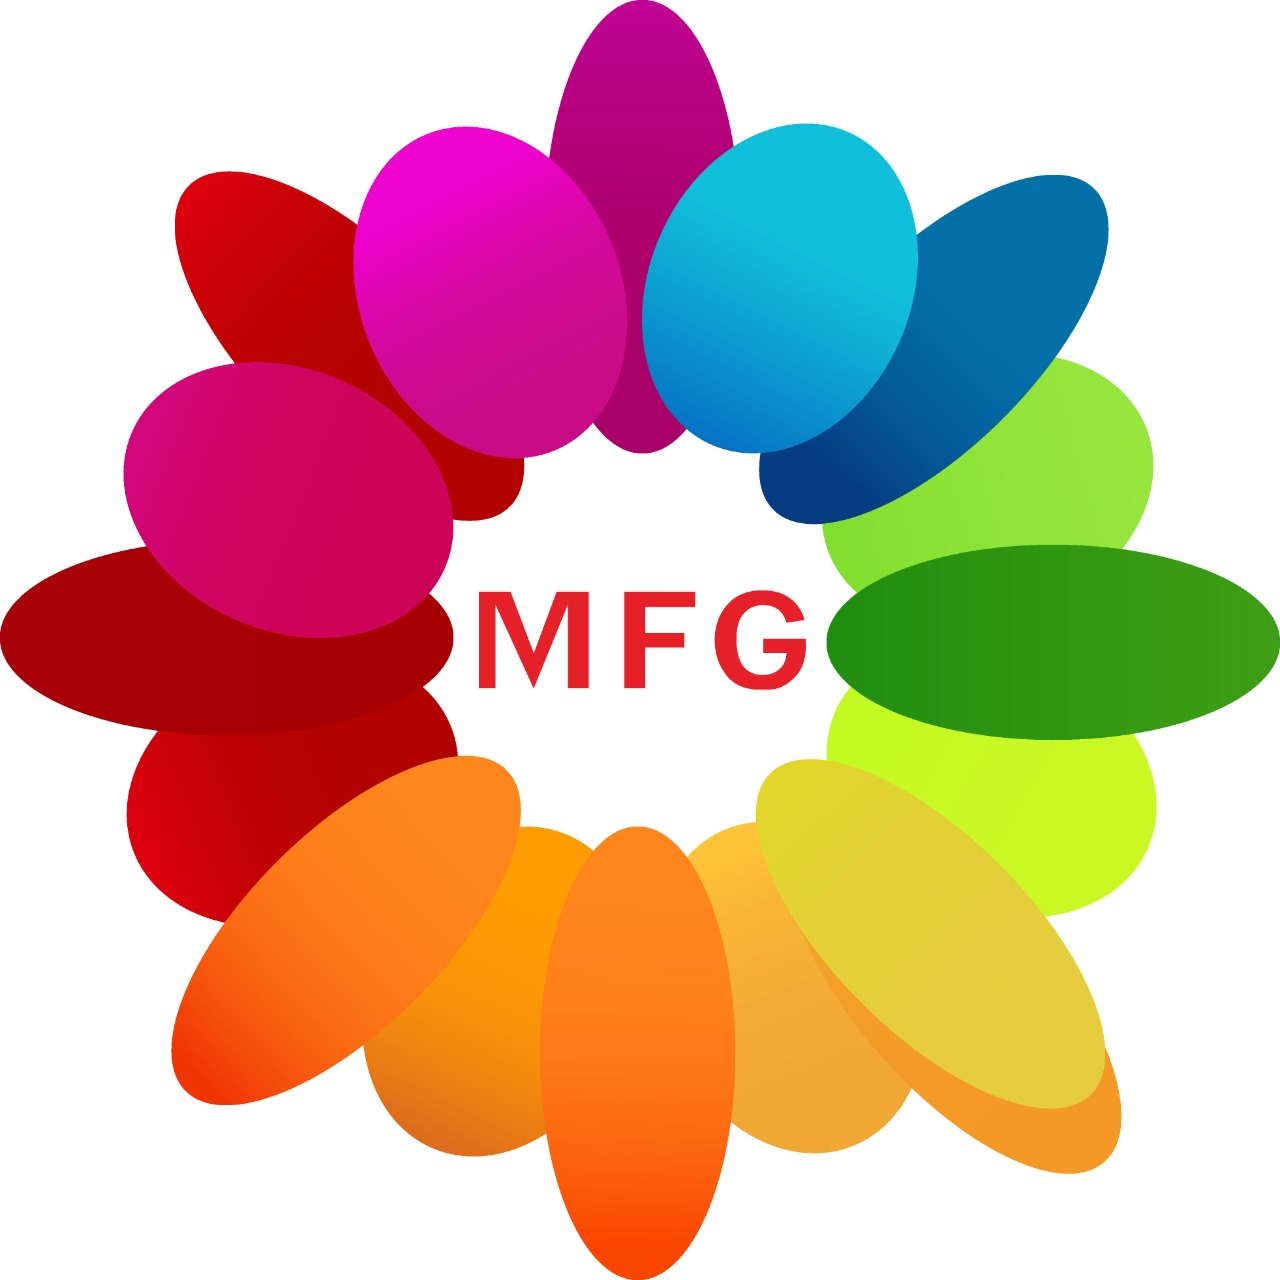 Beautiful bouquet of red roses with white lilies with 1 kg chocovanilla cake with bottle of wine